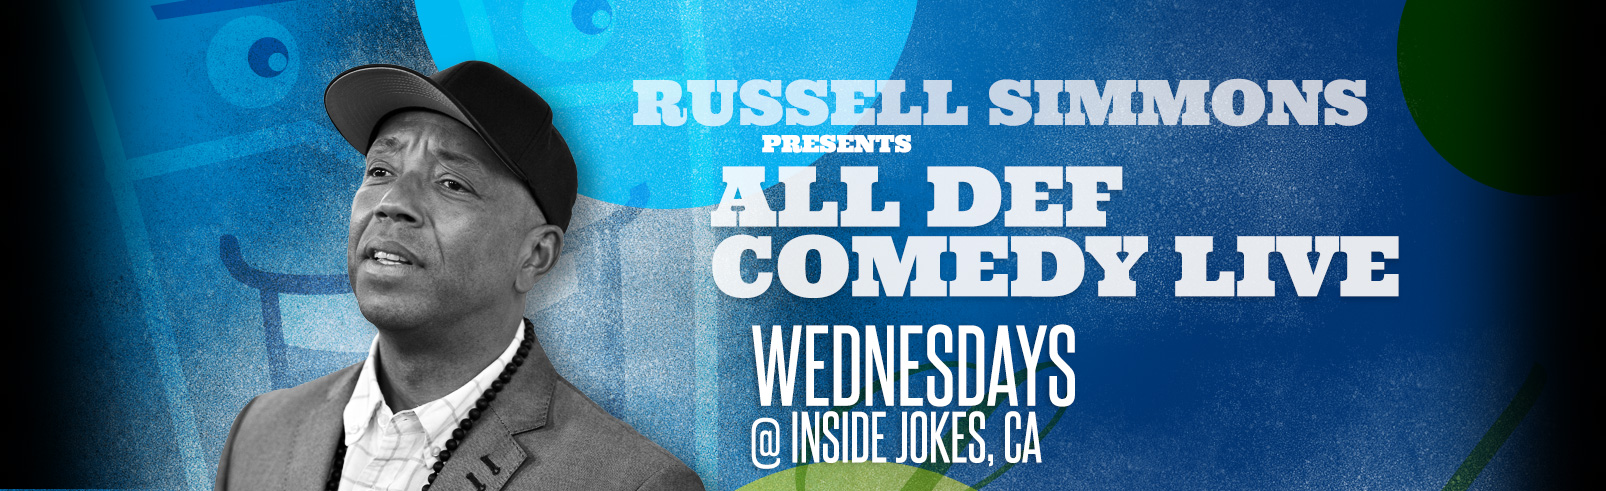 Russell Simmons @ Inside Jokes